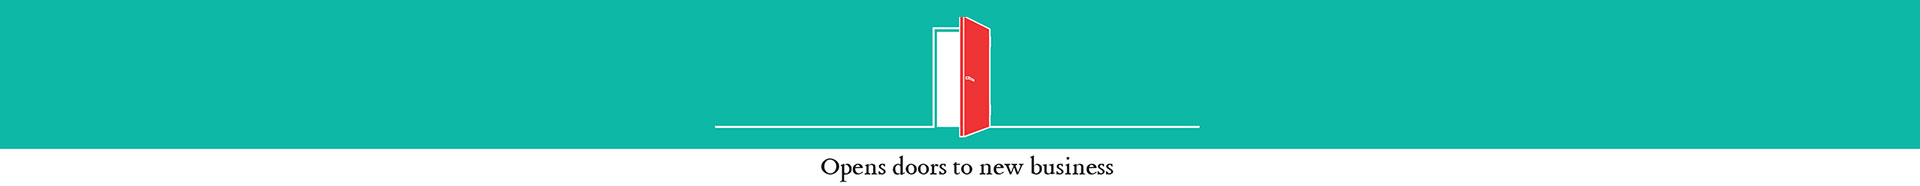 Open your doors to new business